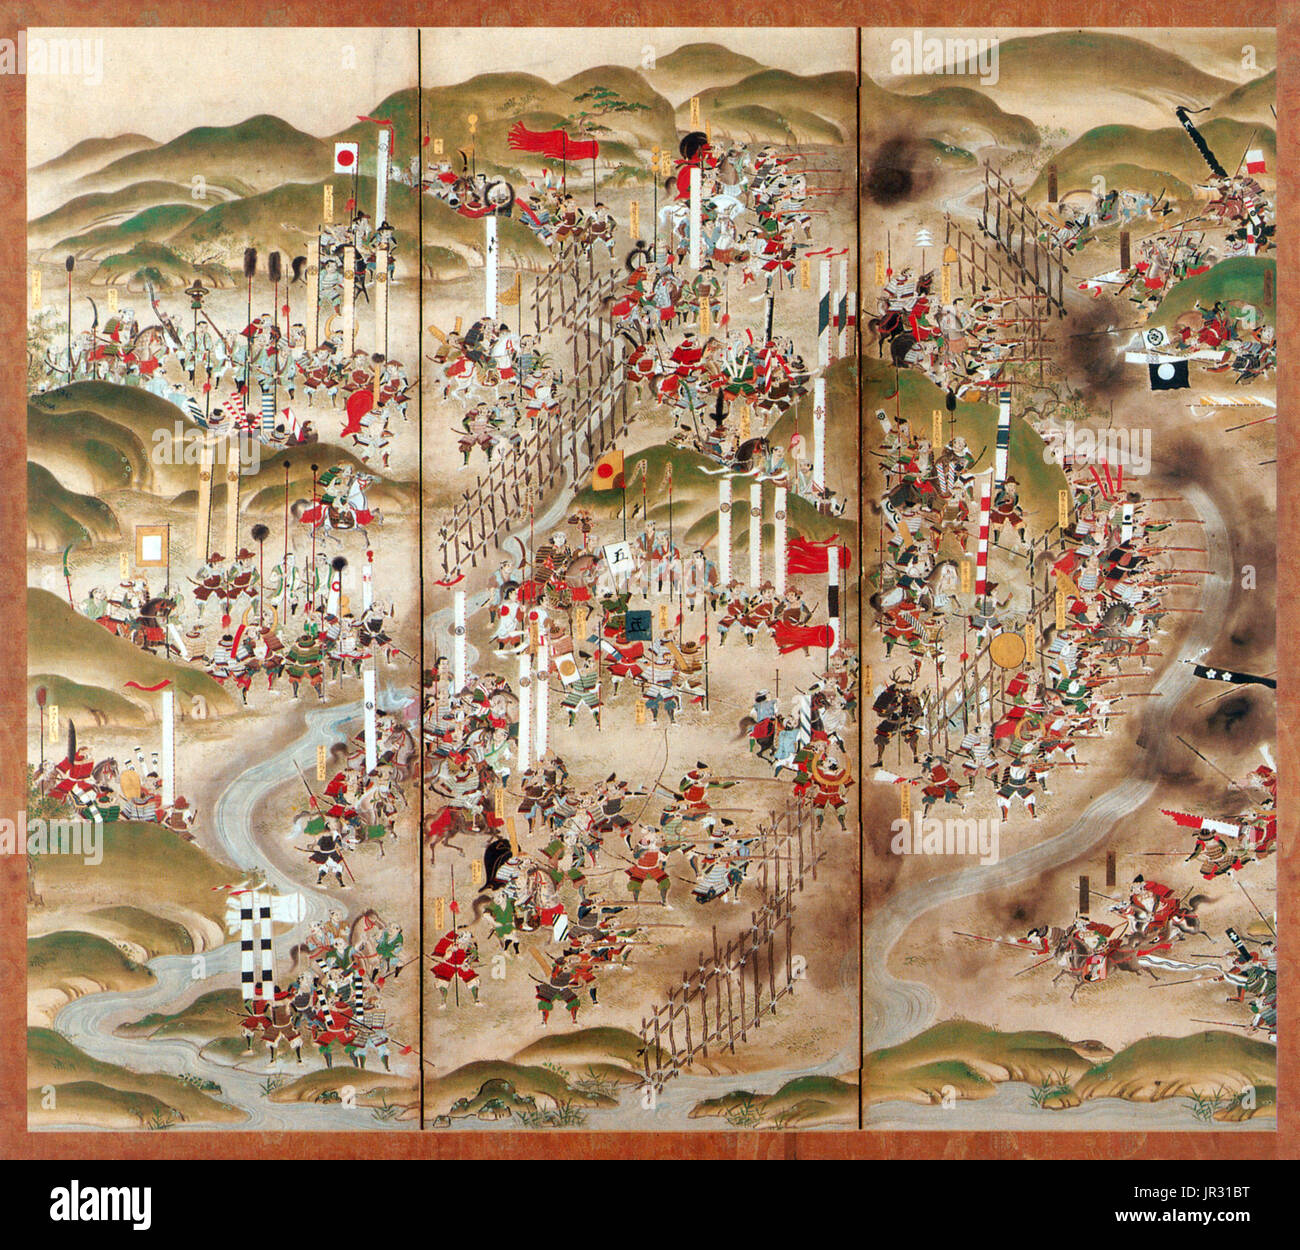 The Battle of Nagashino took place in 1575 near Nagashino Castle on the  plain of Shitarabara in the Mikawa Province of Japan. Takeda Katsuyori  attacked the ...